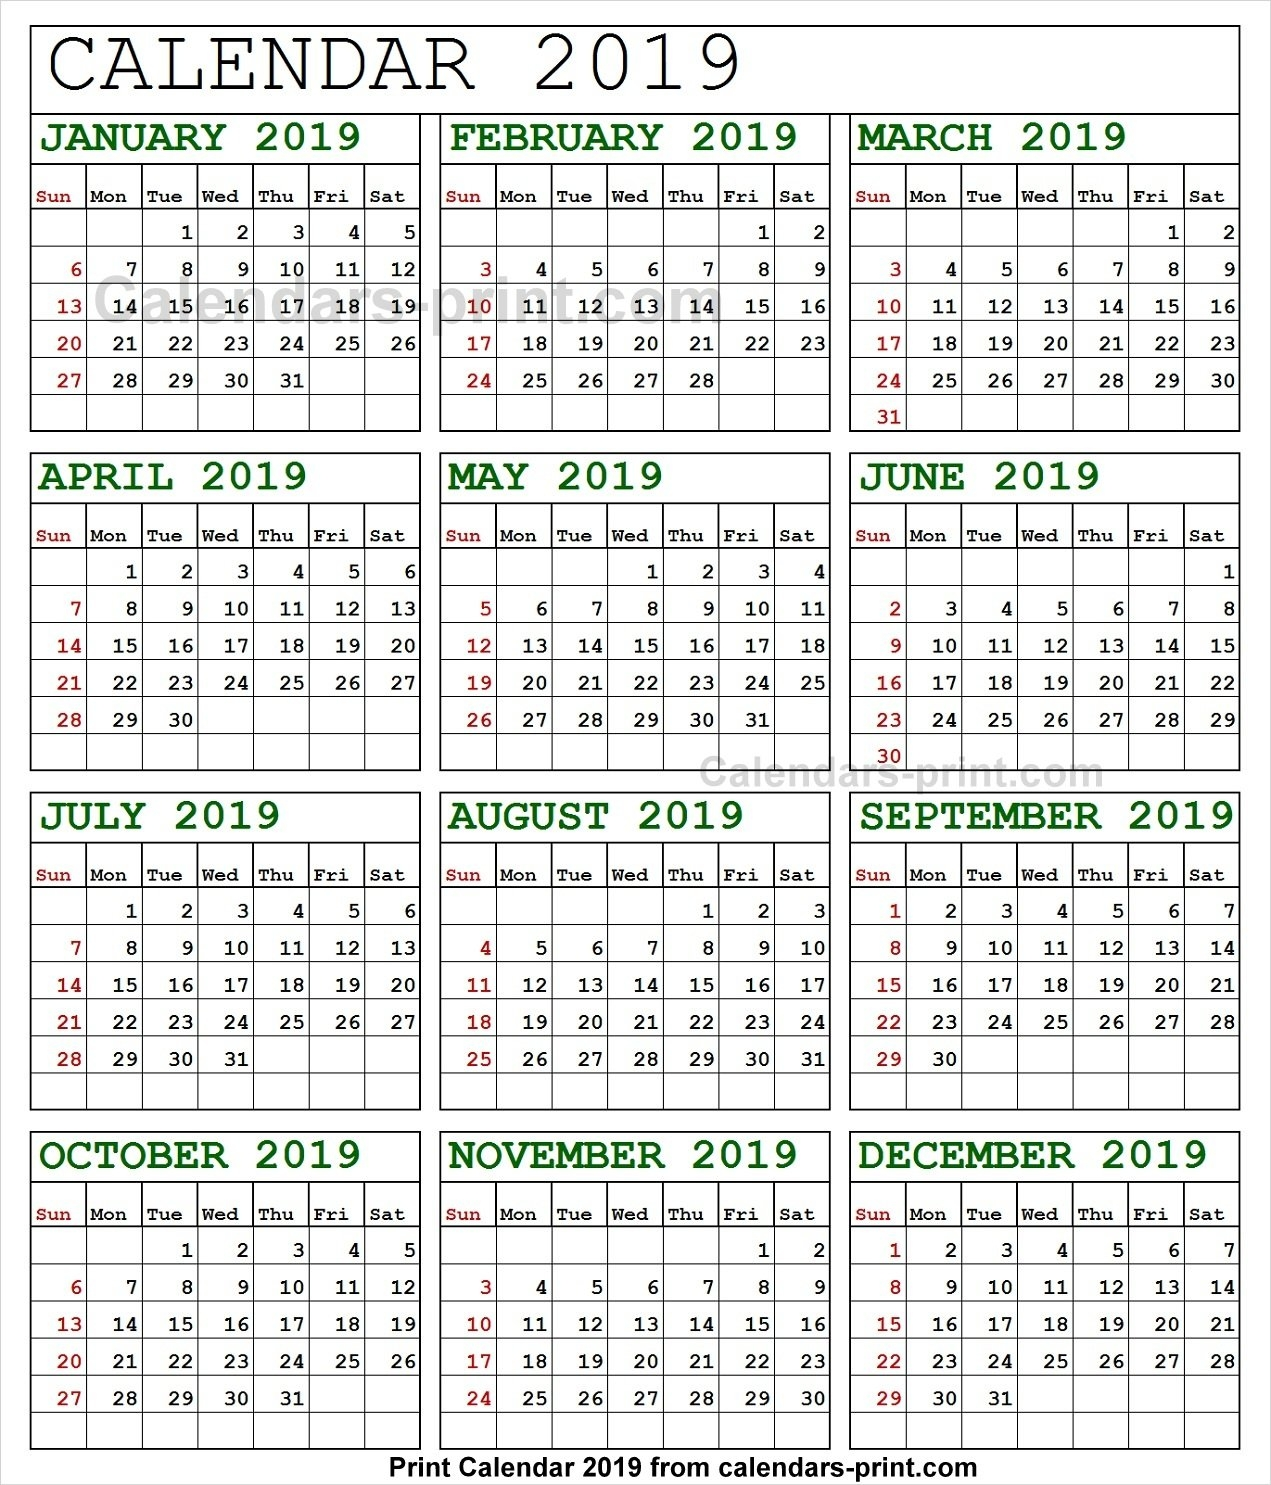 Online Calendar 2019 Printable Template With Notes | Holidays Calendar 2019 Buy Online